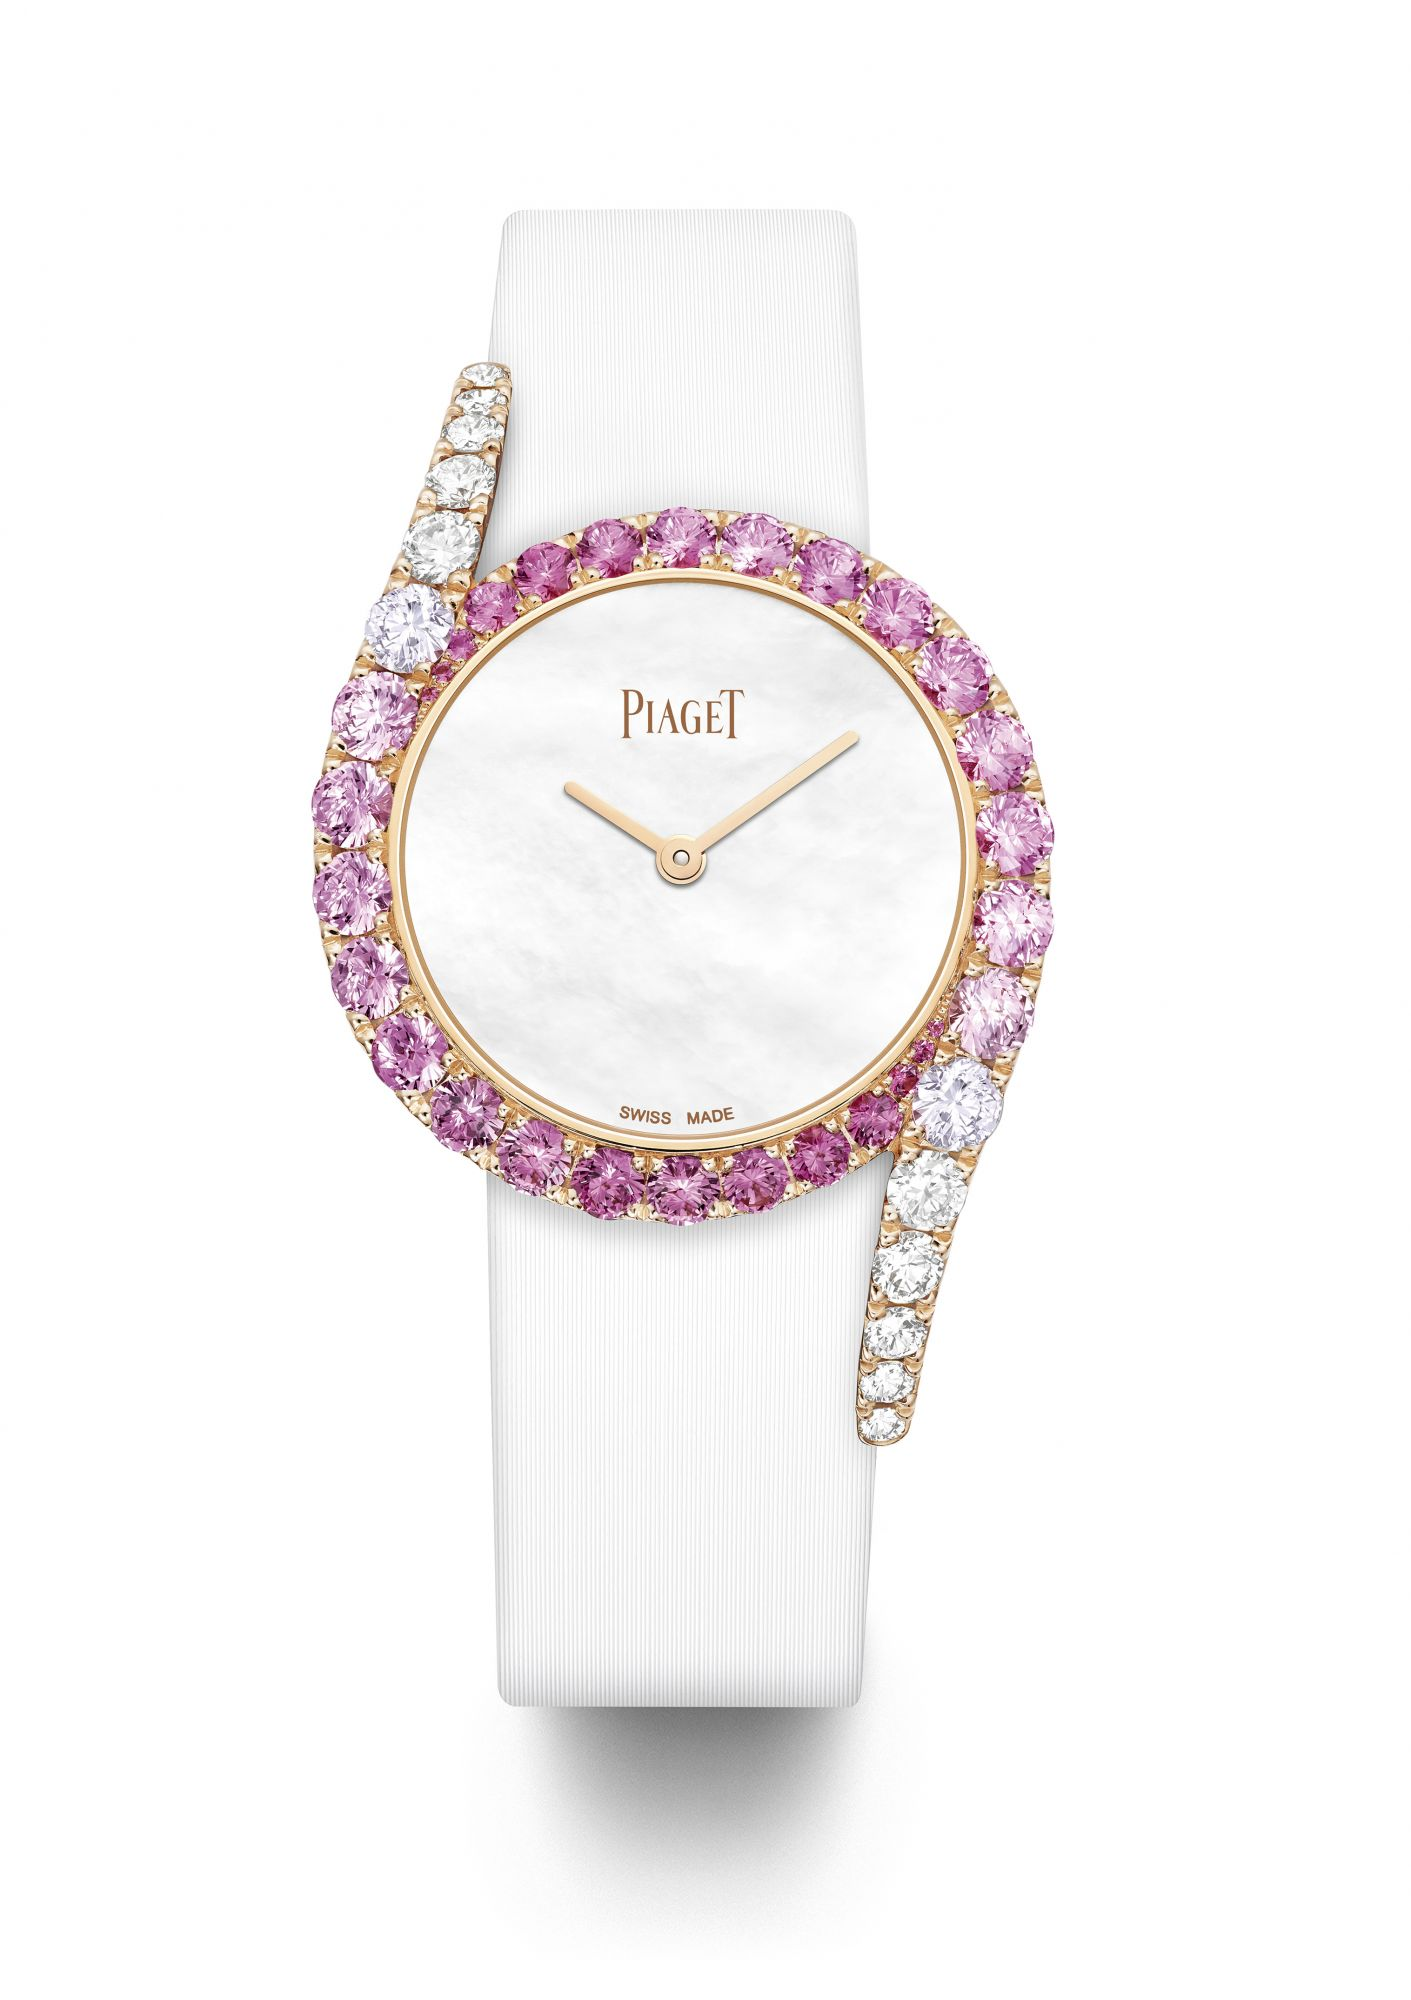 Limelight Gala Precious Sunset by Piaget (Photo: Piaget)